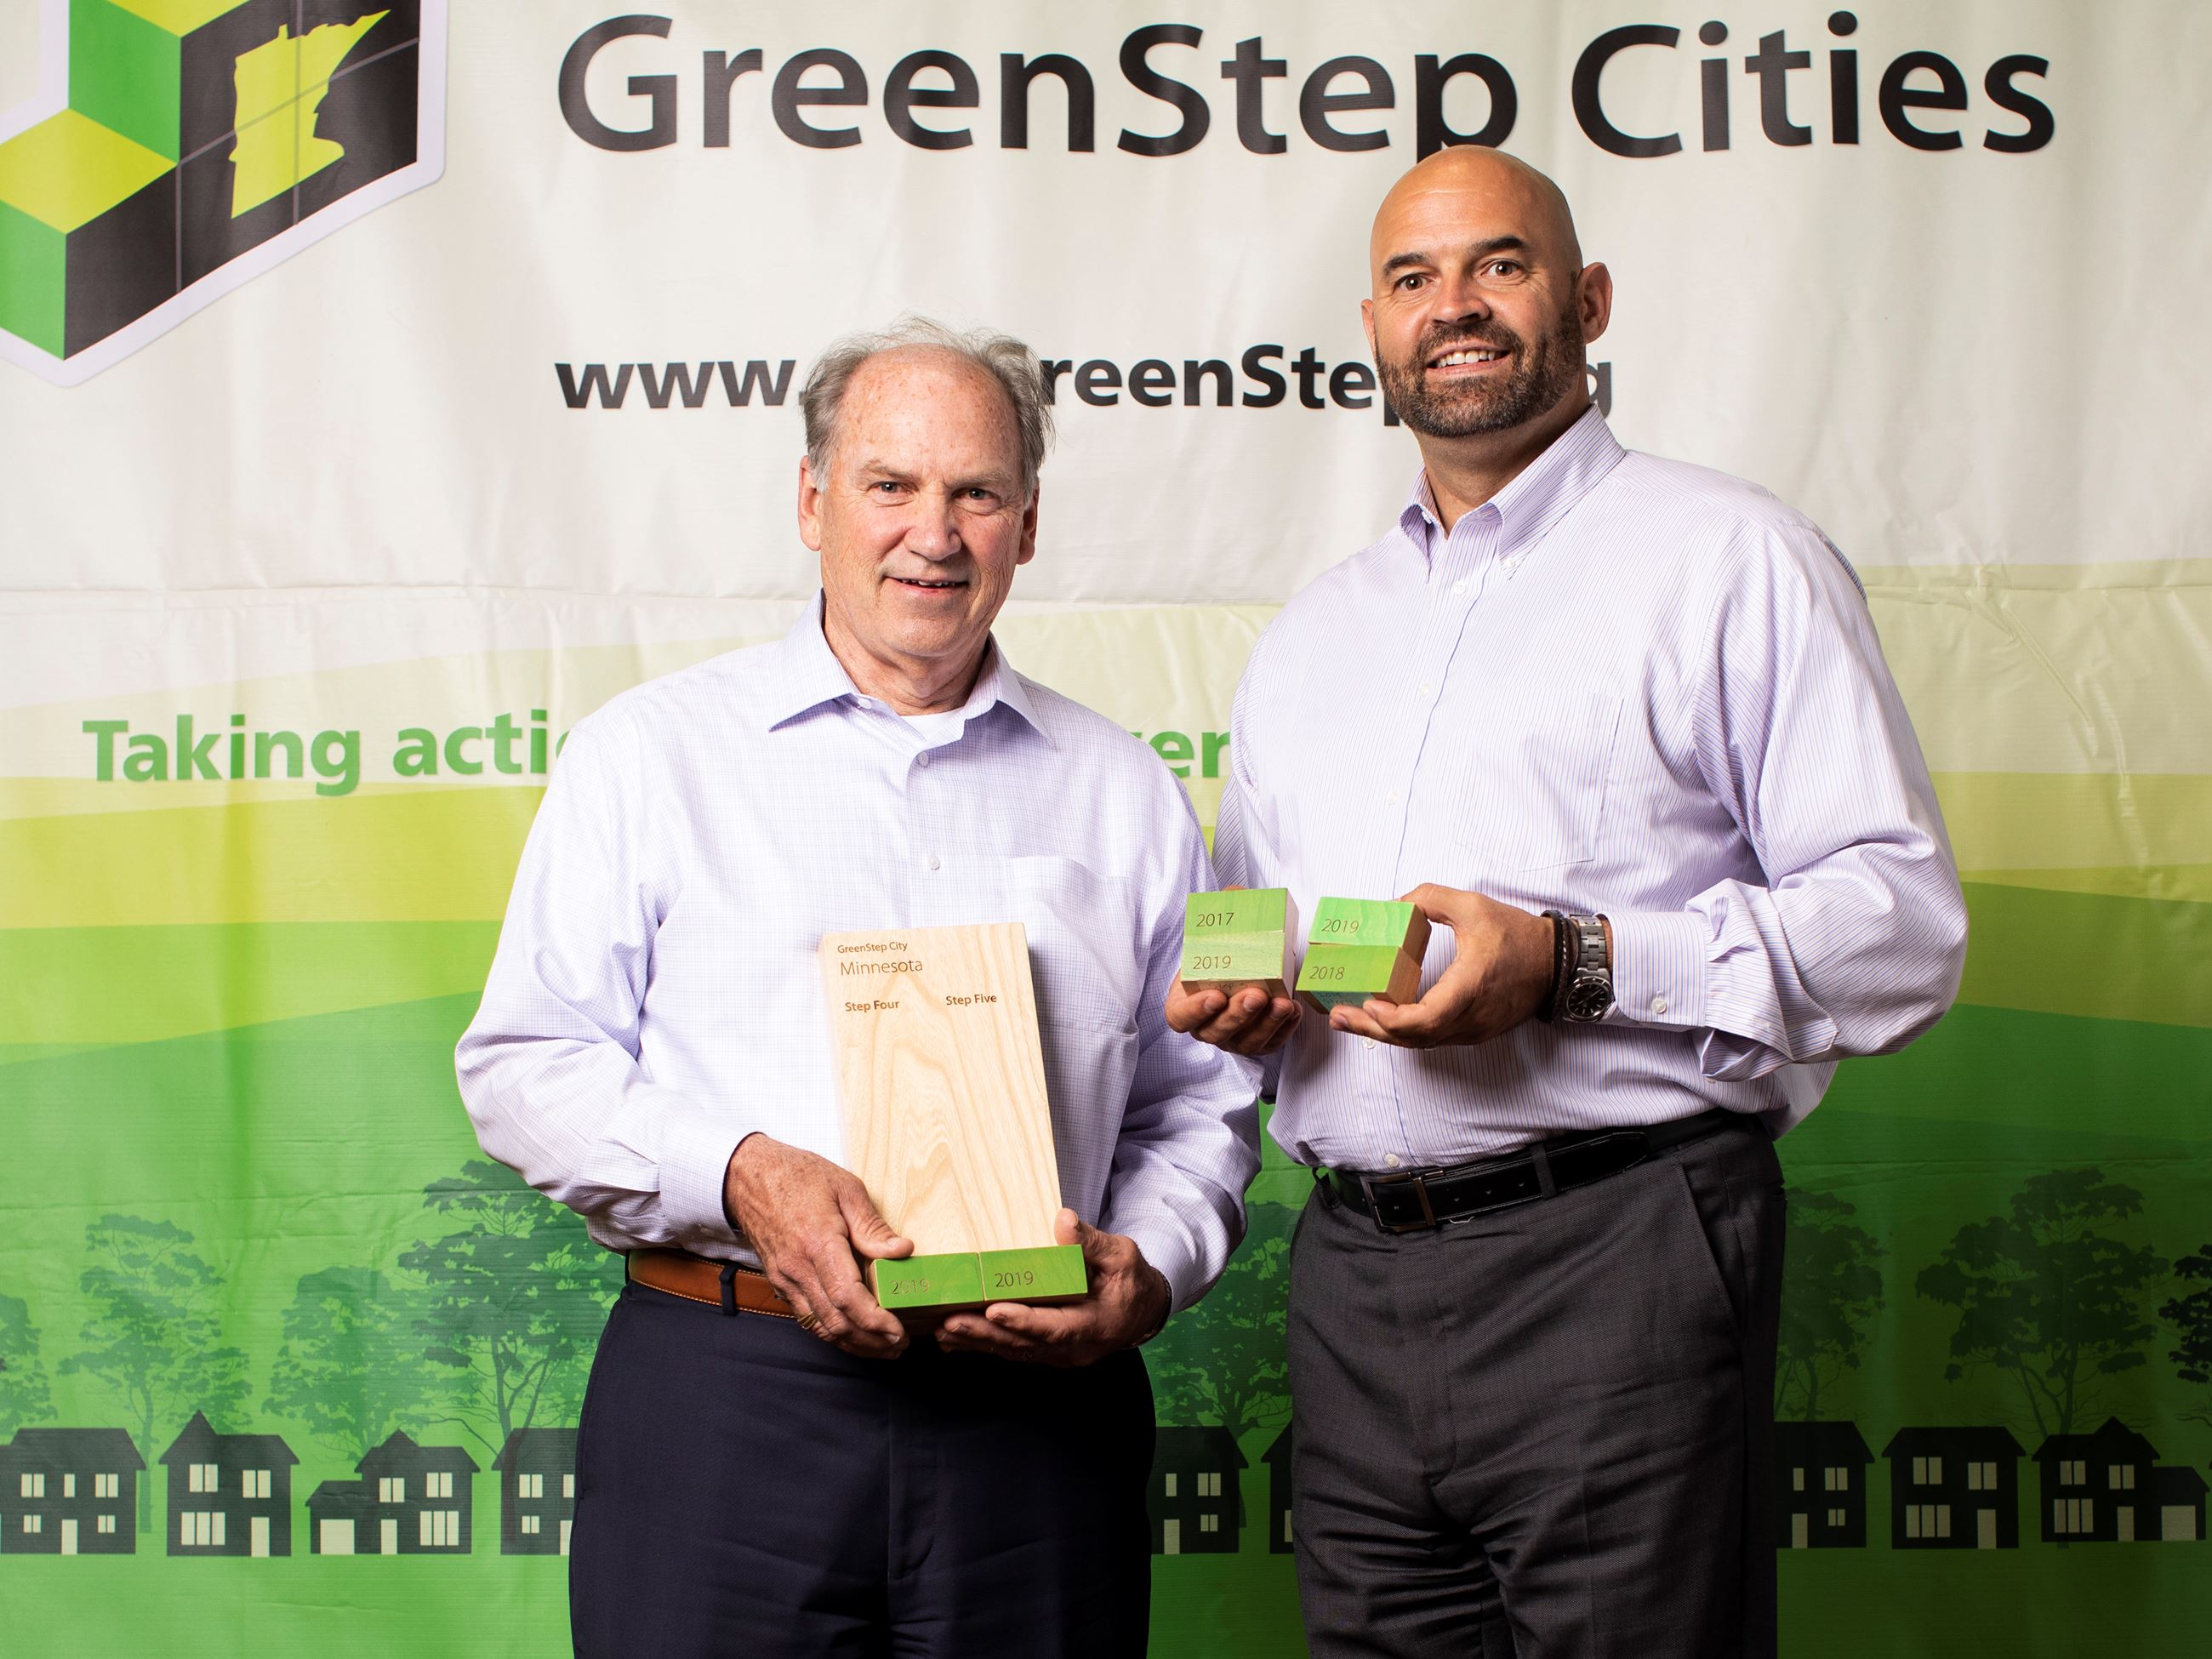 Bill Knutson and Mike Funk Accept the GreenStep City Step 5 Award